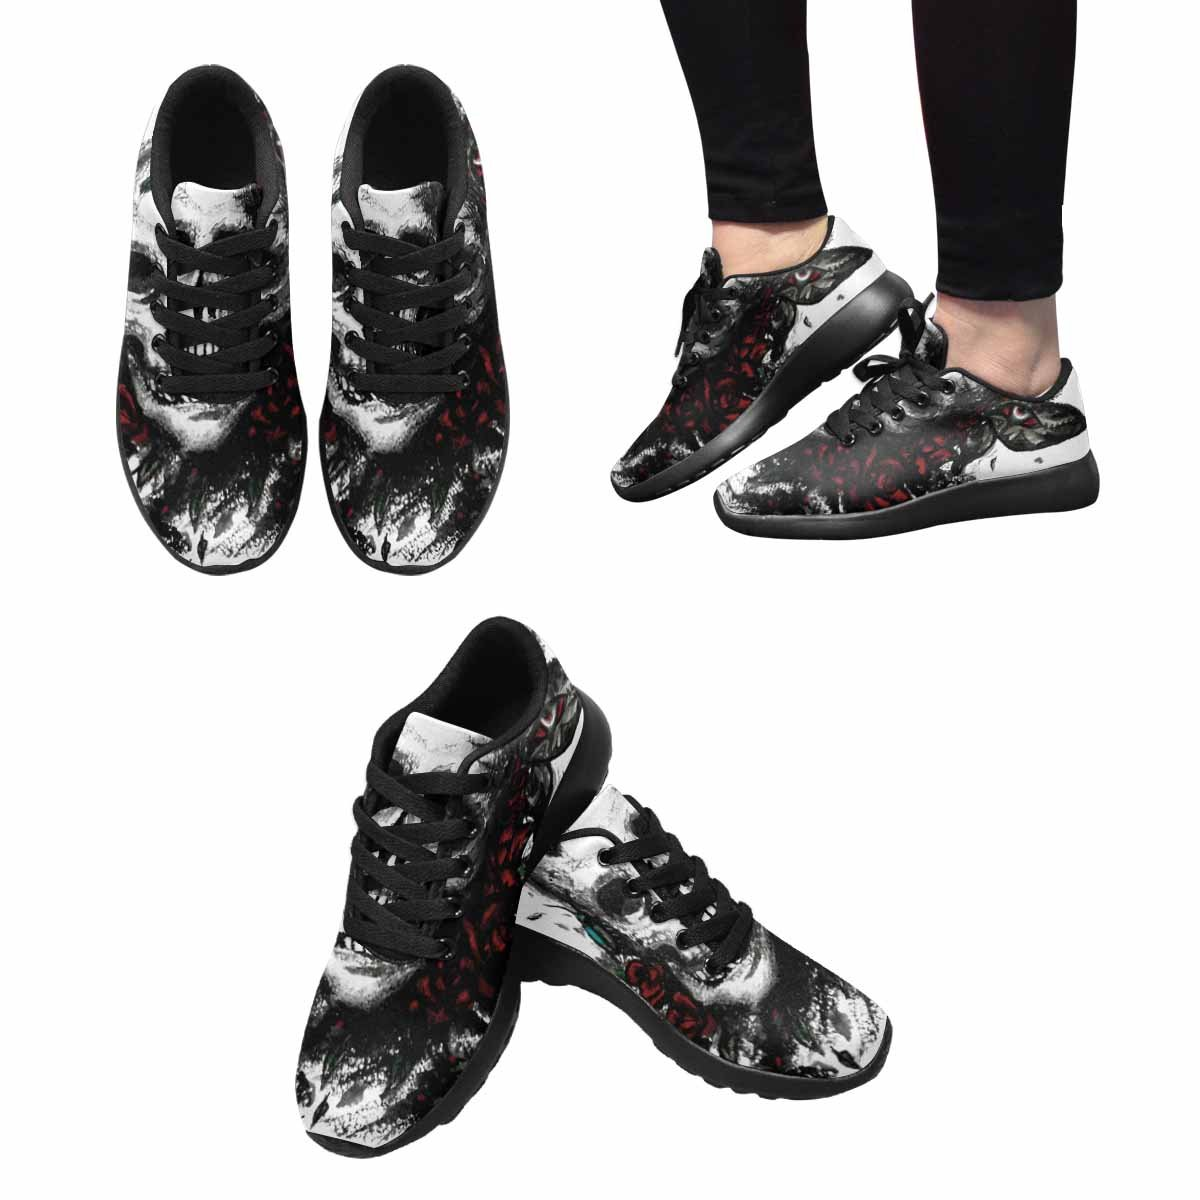 InterestPrint Women's Jogging Running Sneaker Lightweight Go Easy Walking Comfort Sports Running Shoes Watercolor Skull With Flowers 6 B(M) US